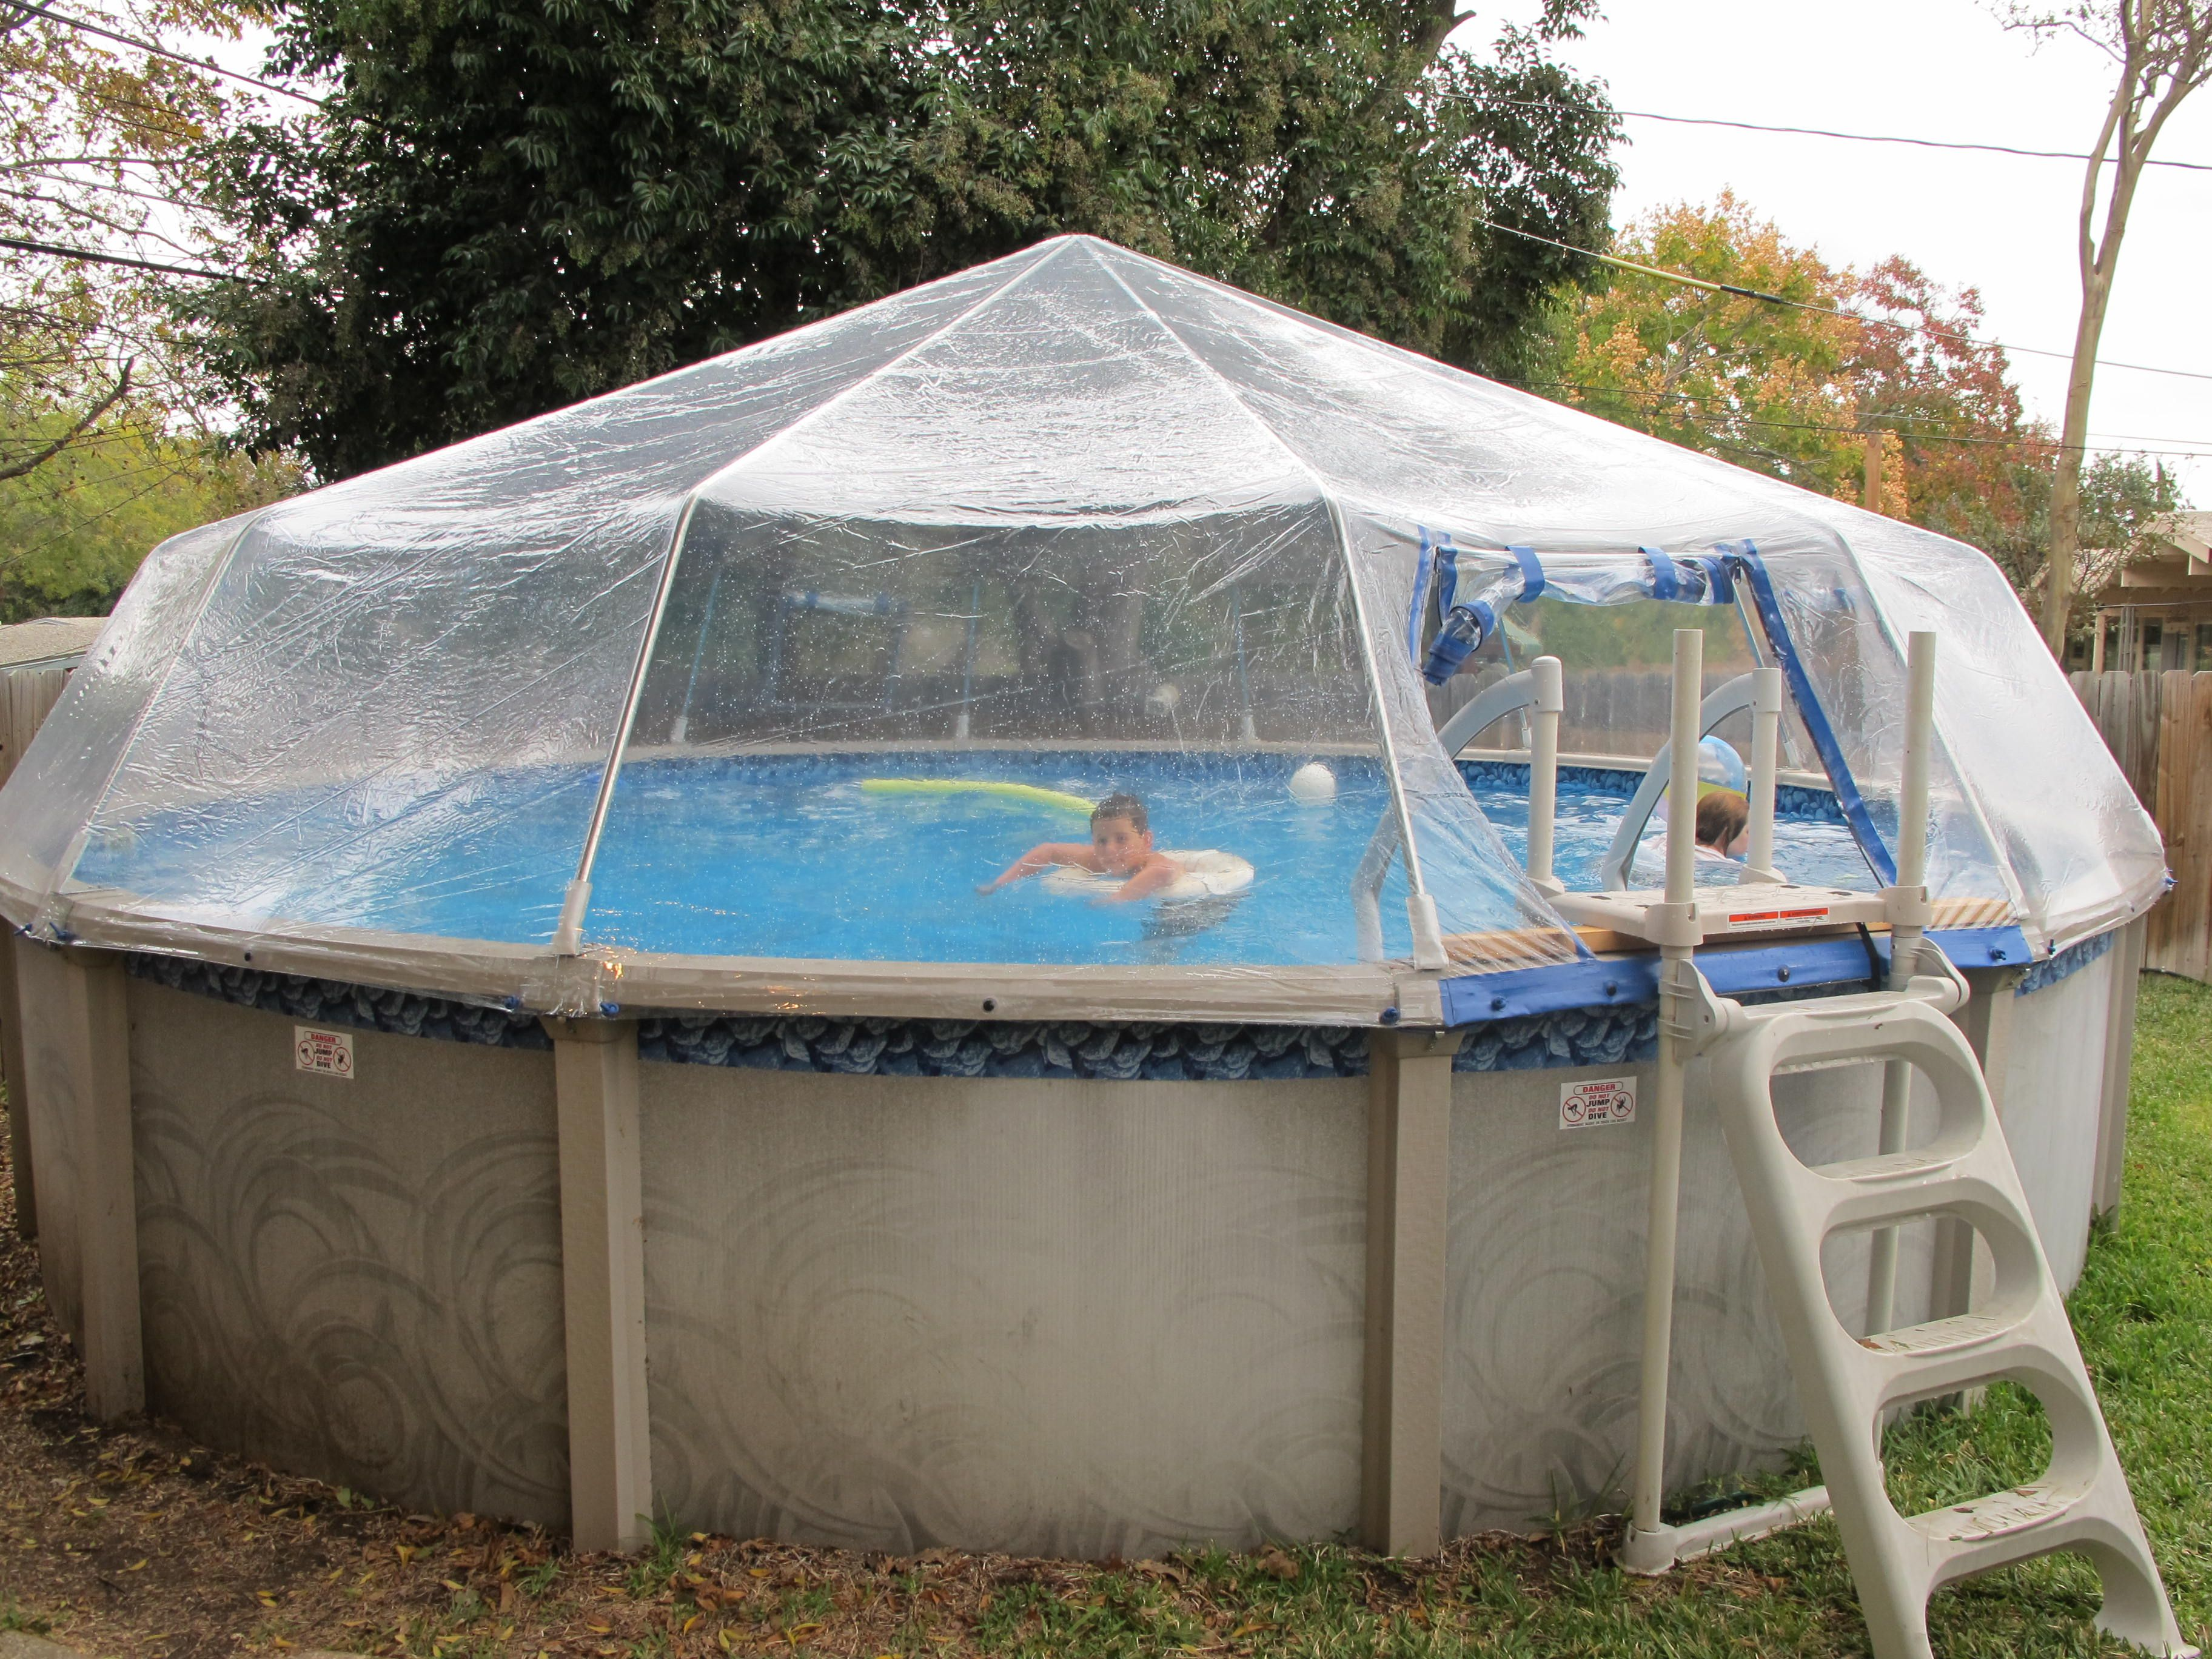 Above ground pool dome design decor 32591 decorating ideas for Club piscine above ground pools prices